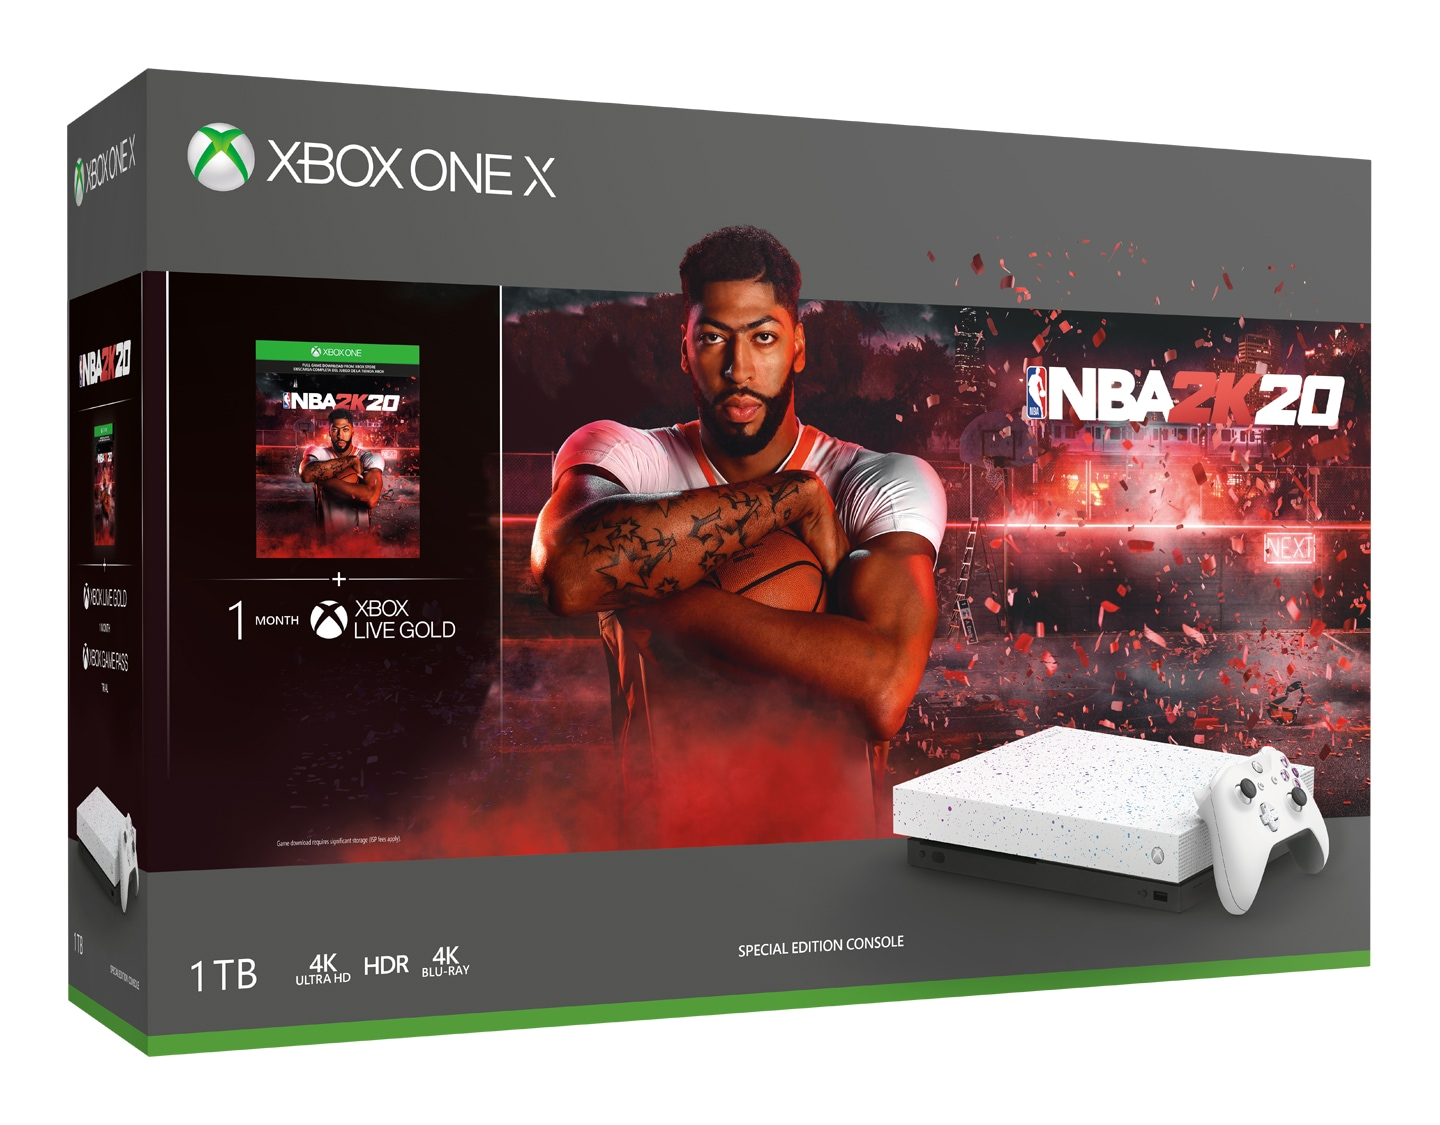 Xbox One X NBA 2K20 Special Edition bundle box art